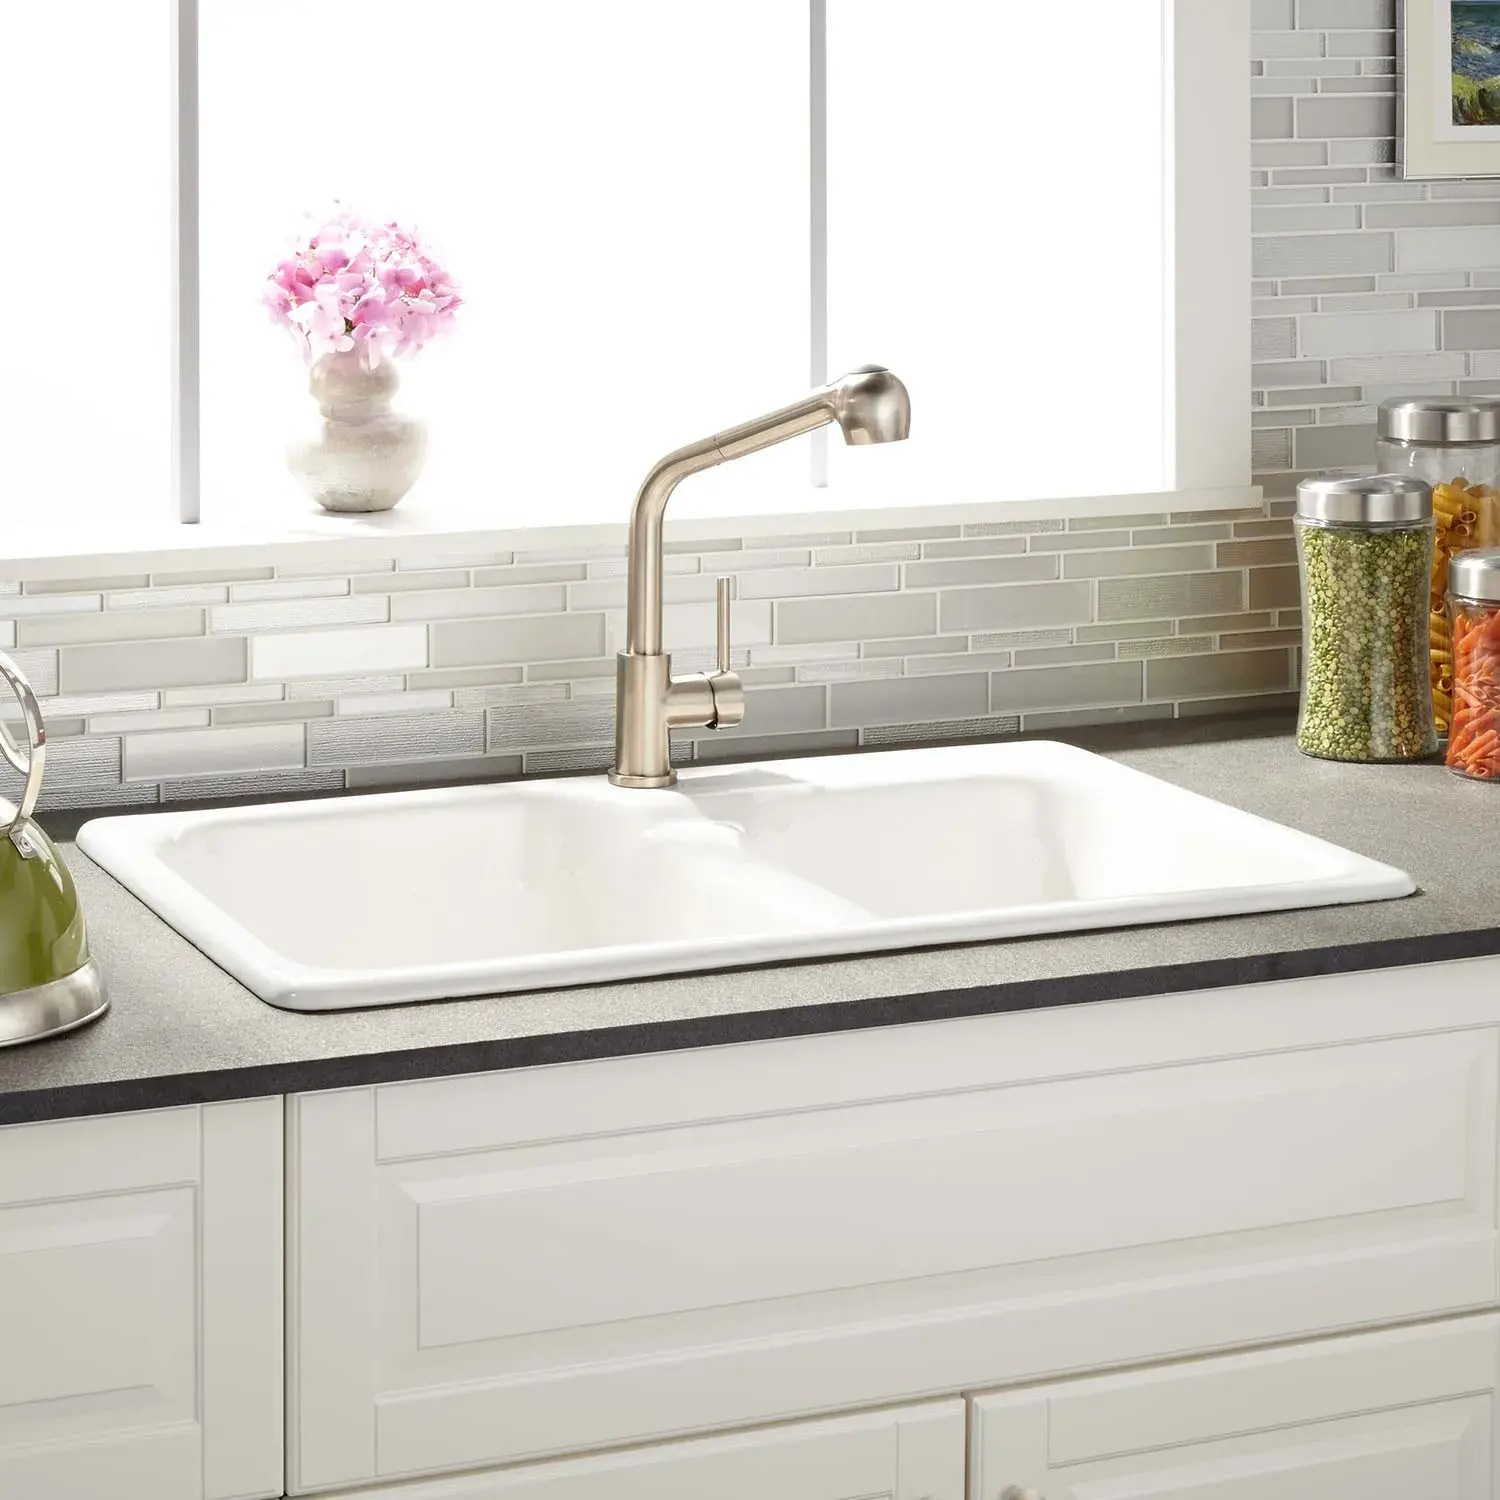 33 elgin 60 40 offset double bowl cast iron drop in kitchen sink white